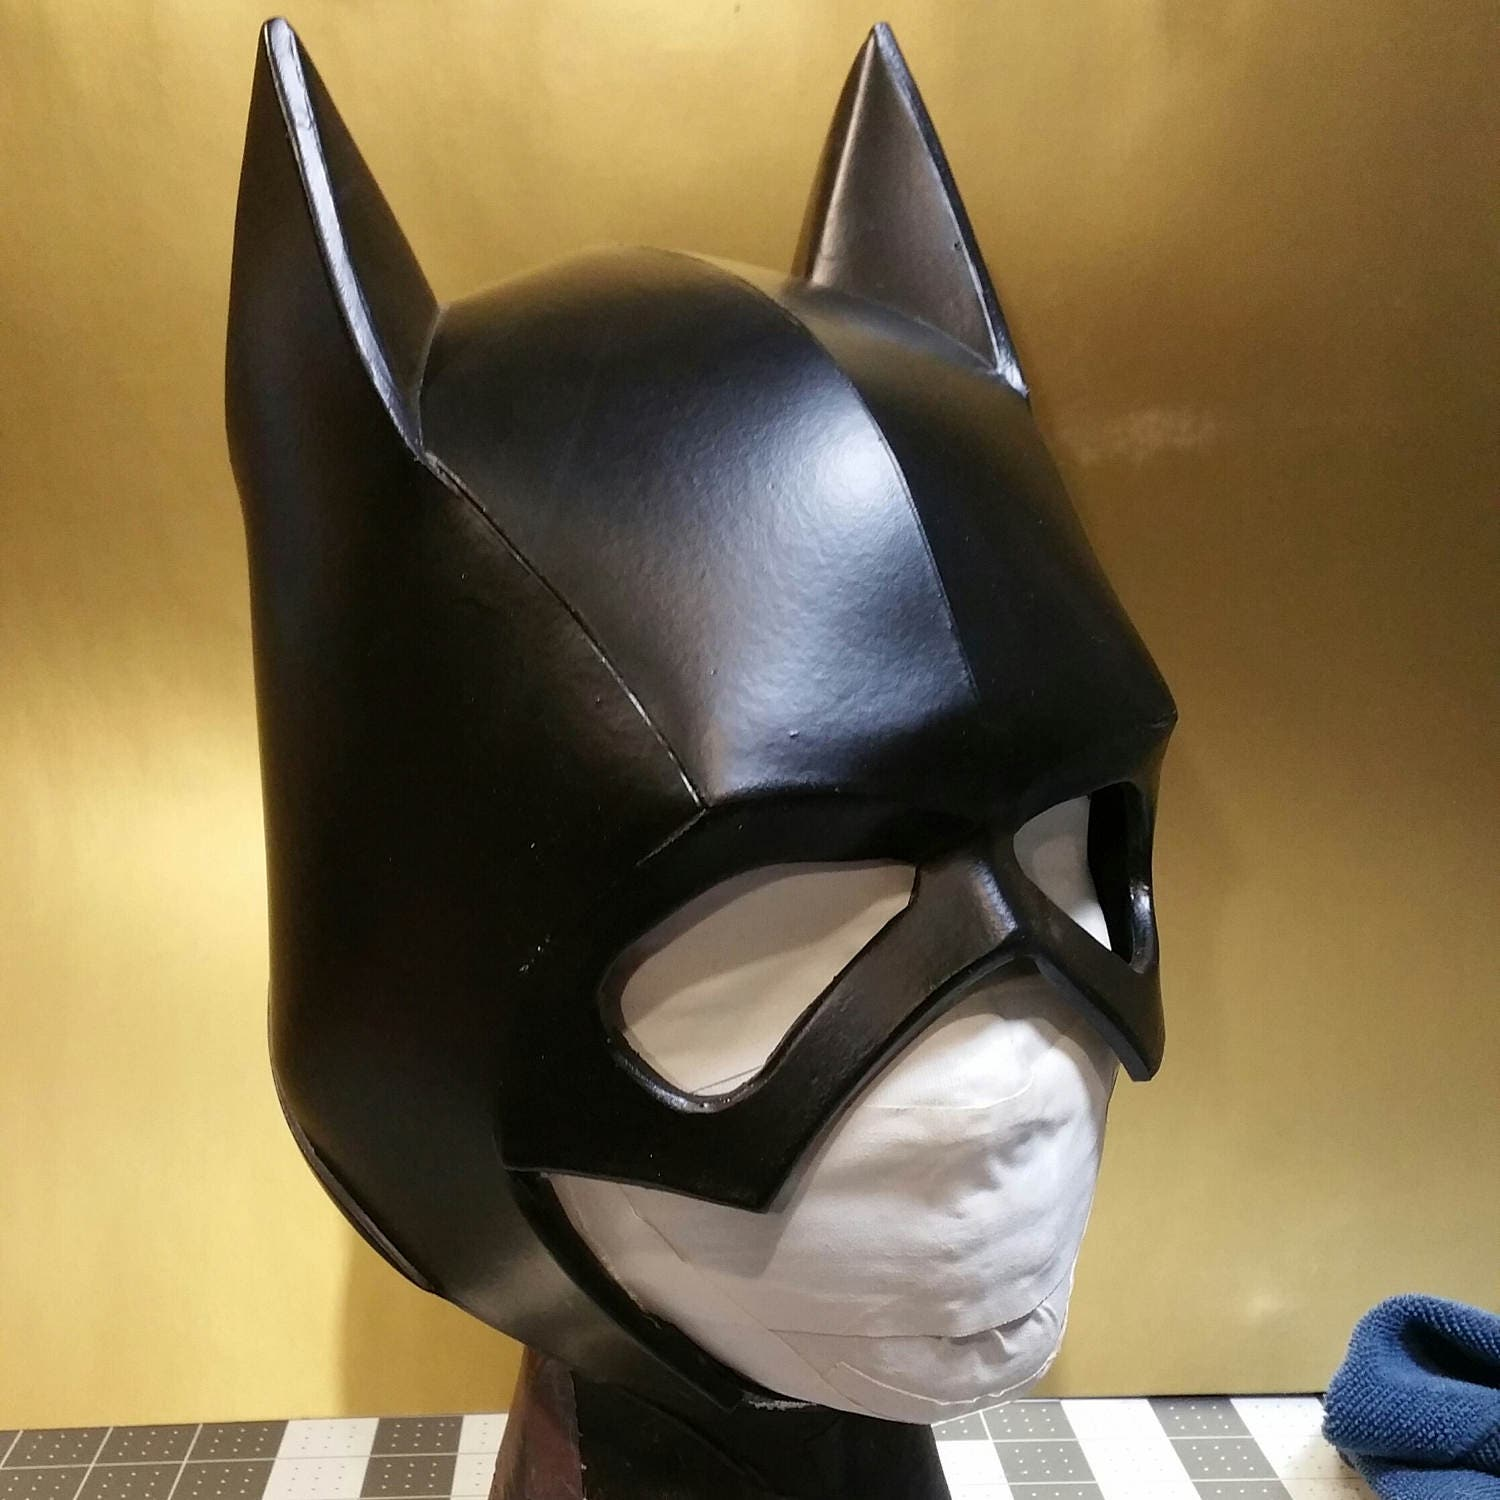 Batgurl Batcowl foam helmet template from XiengProd on Etsy Studio